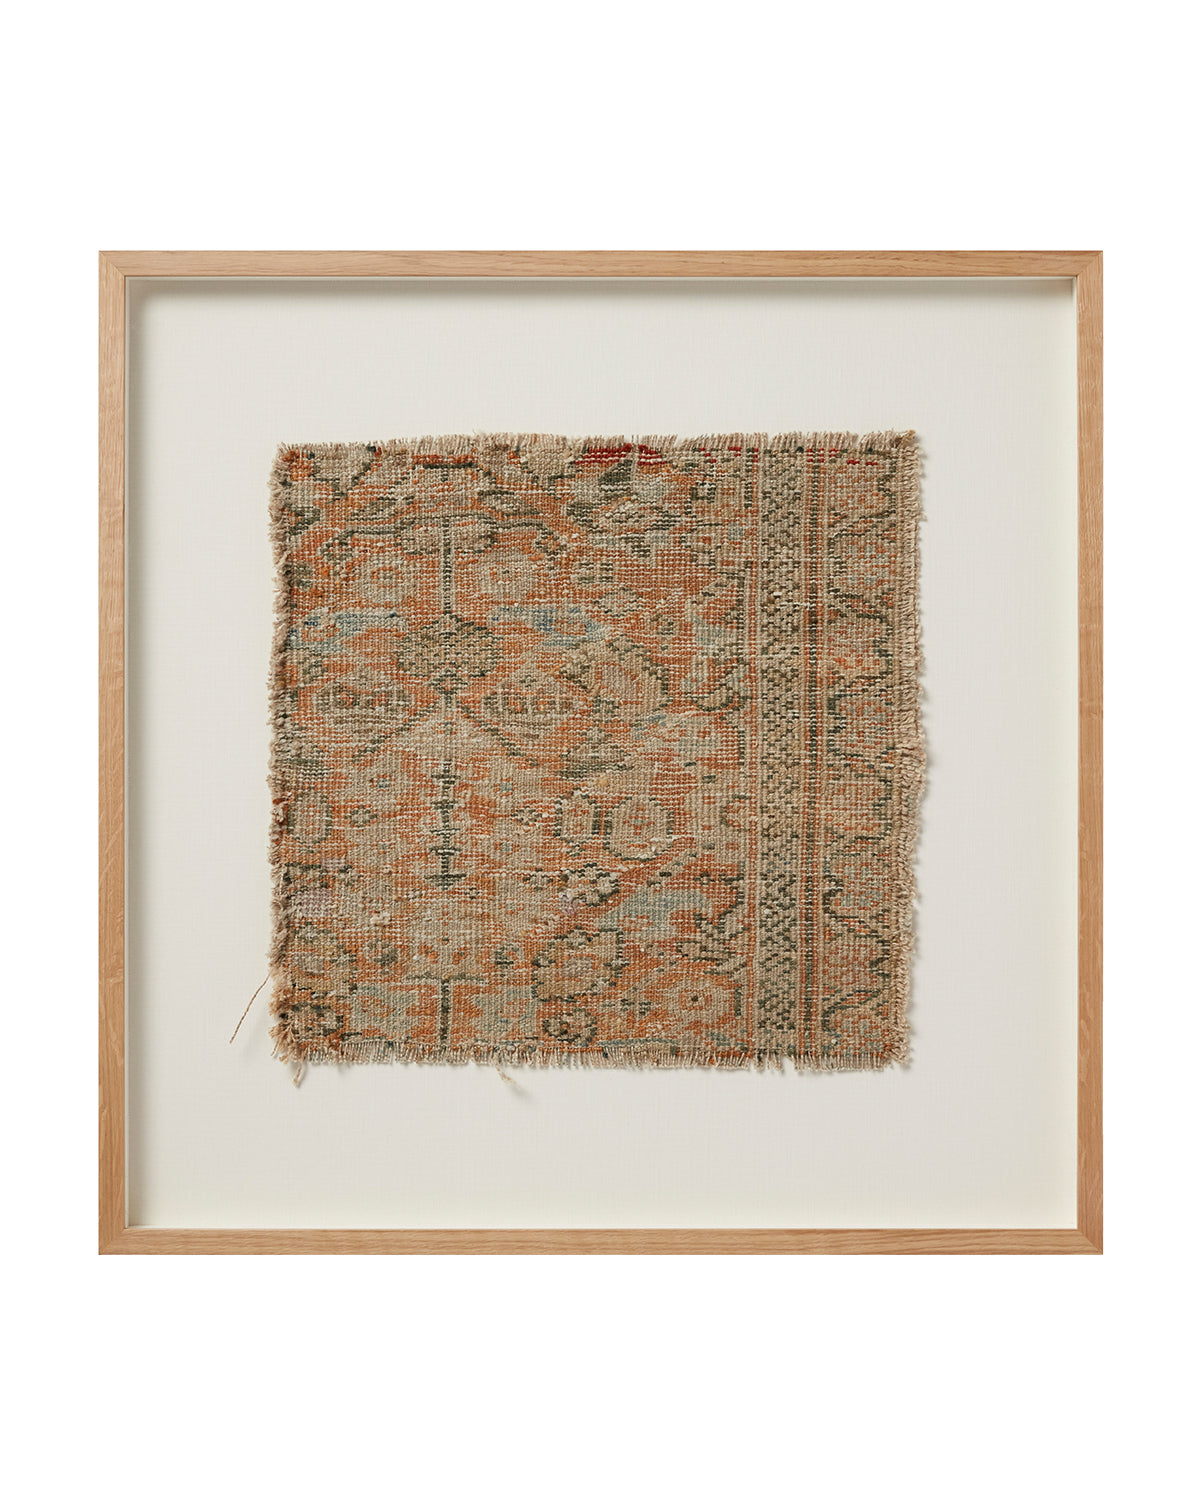 Vintage Framed Rug No. 8